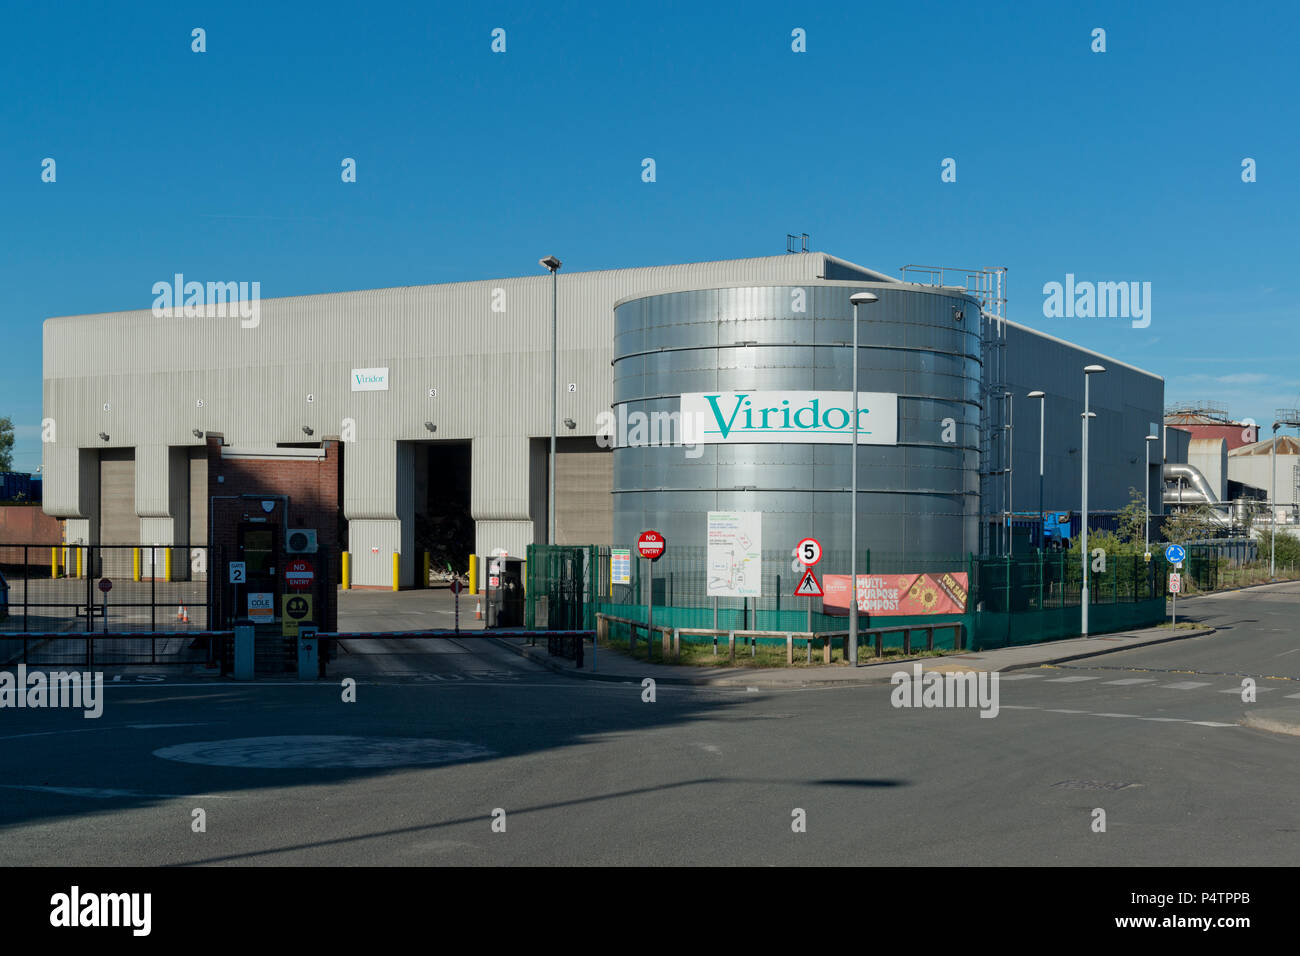 Viridor waste recycling centre located off Longley Lane in Sharston, Manchester, UK. - Stock Image